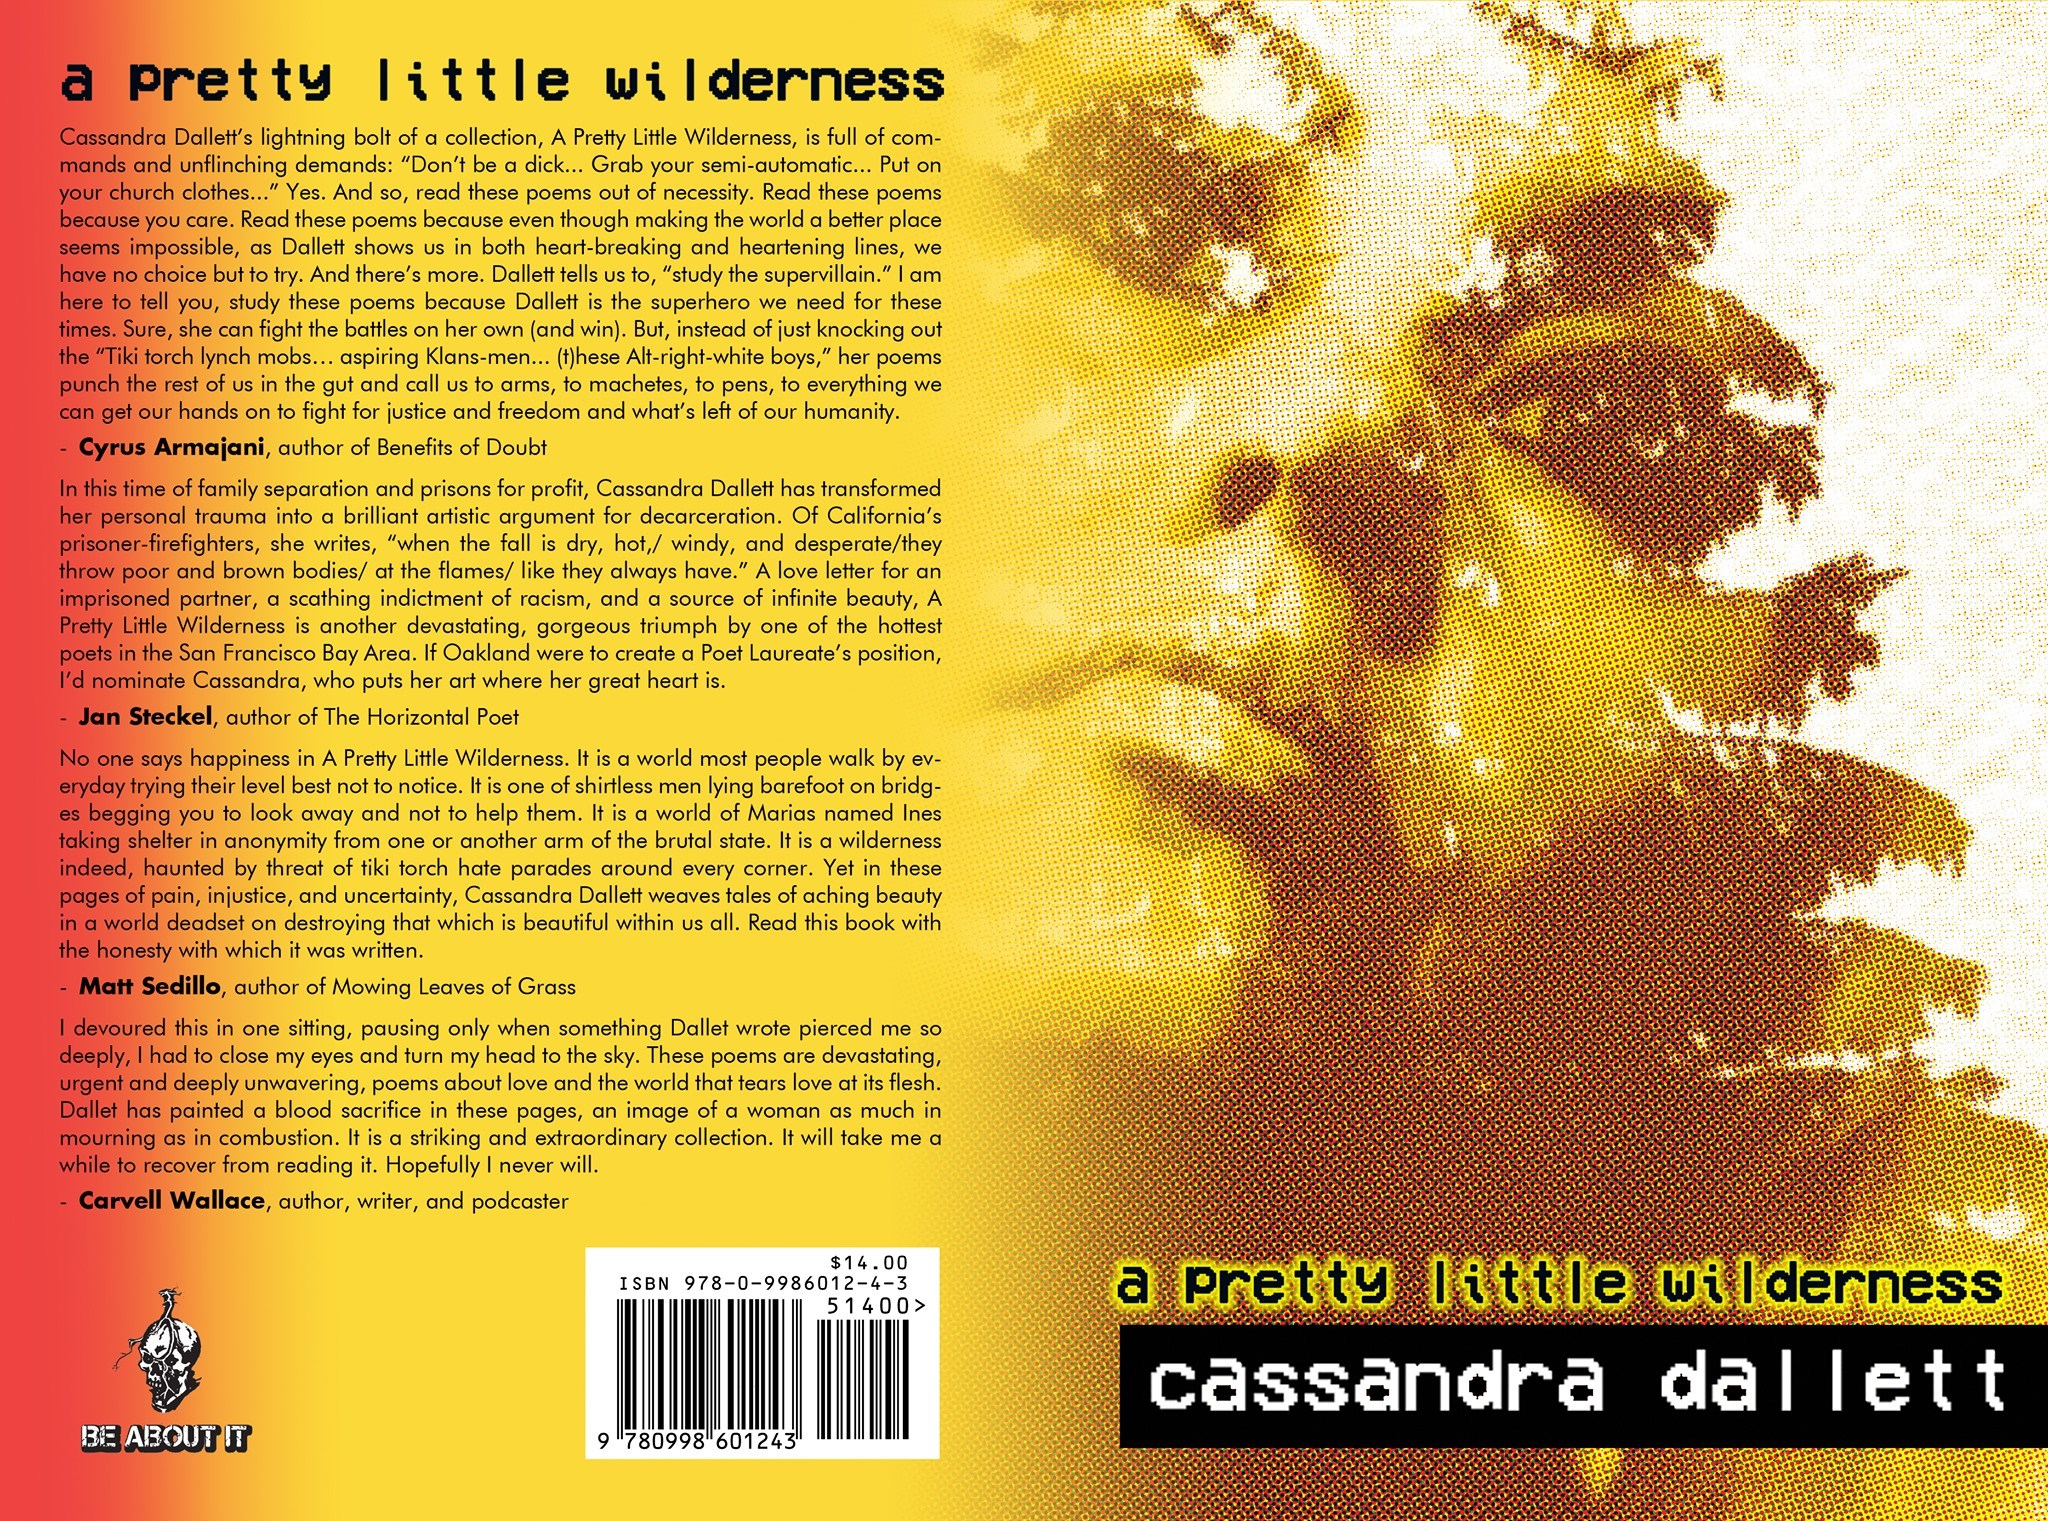 A Pretty Little Wilderness- Be About It Press Book Release Party